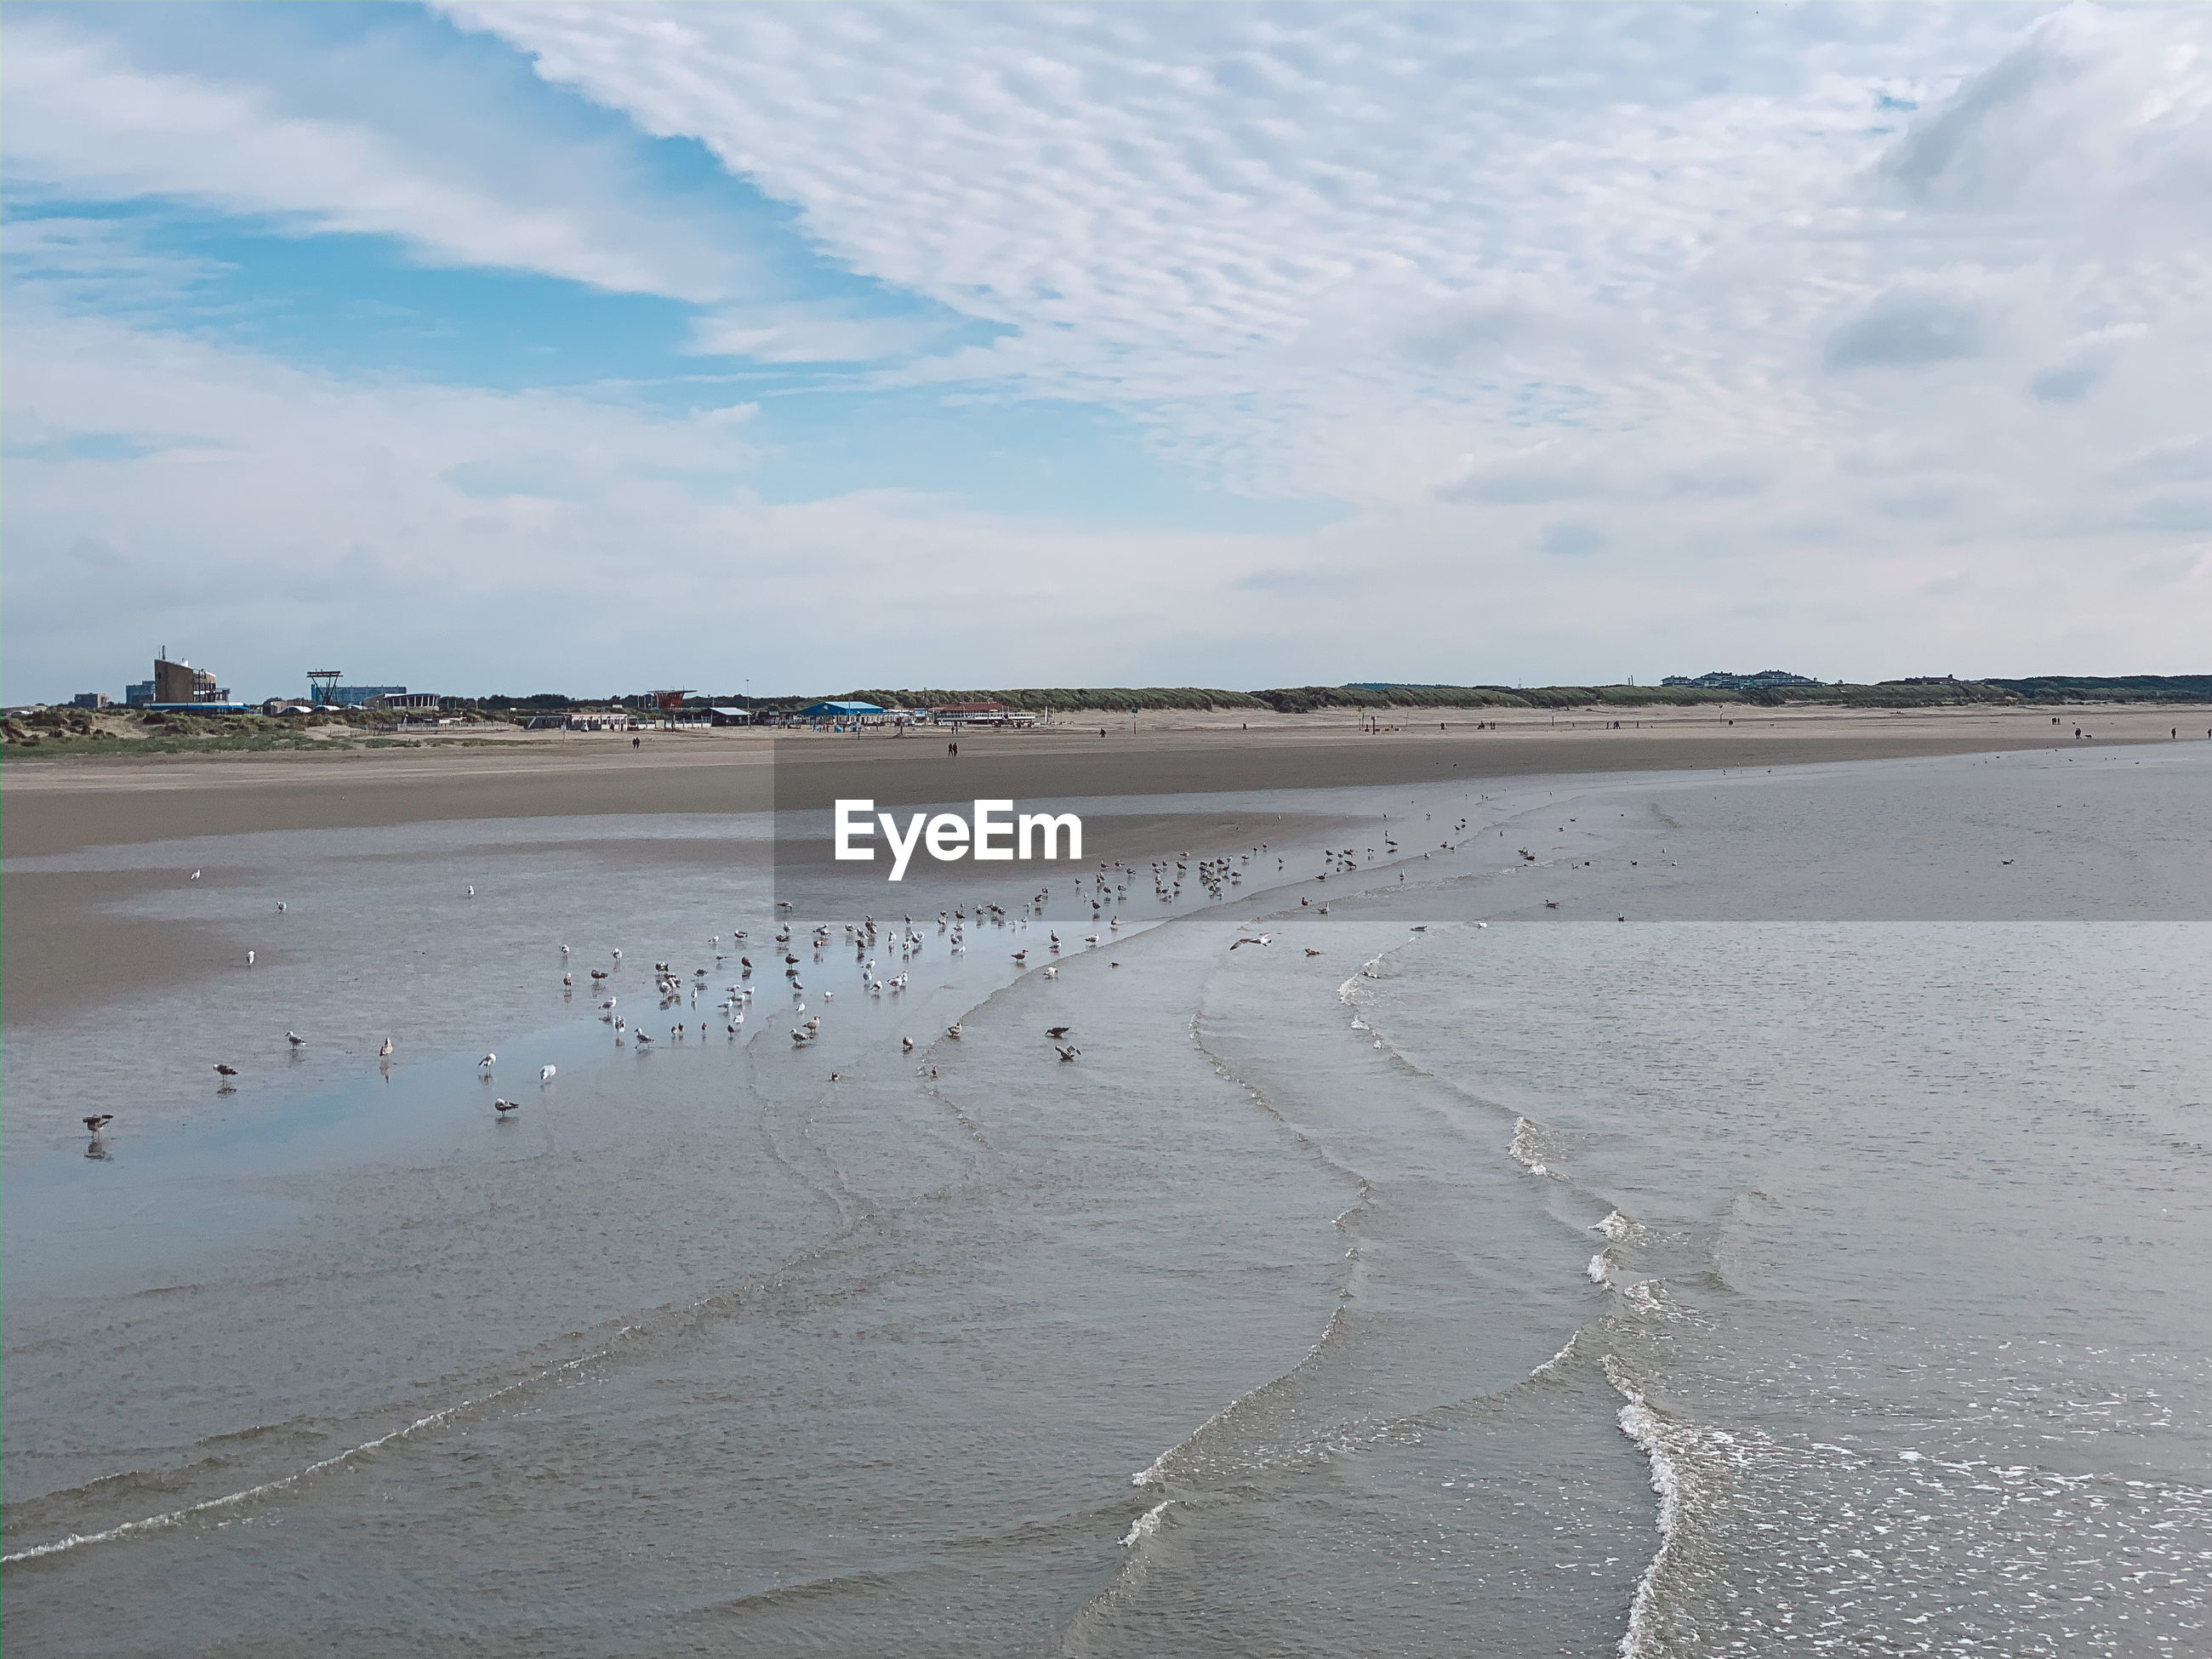 SCENIC VIEW OF WET BEACH AGAINST SKY